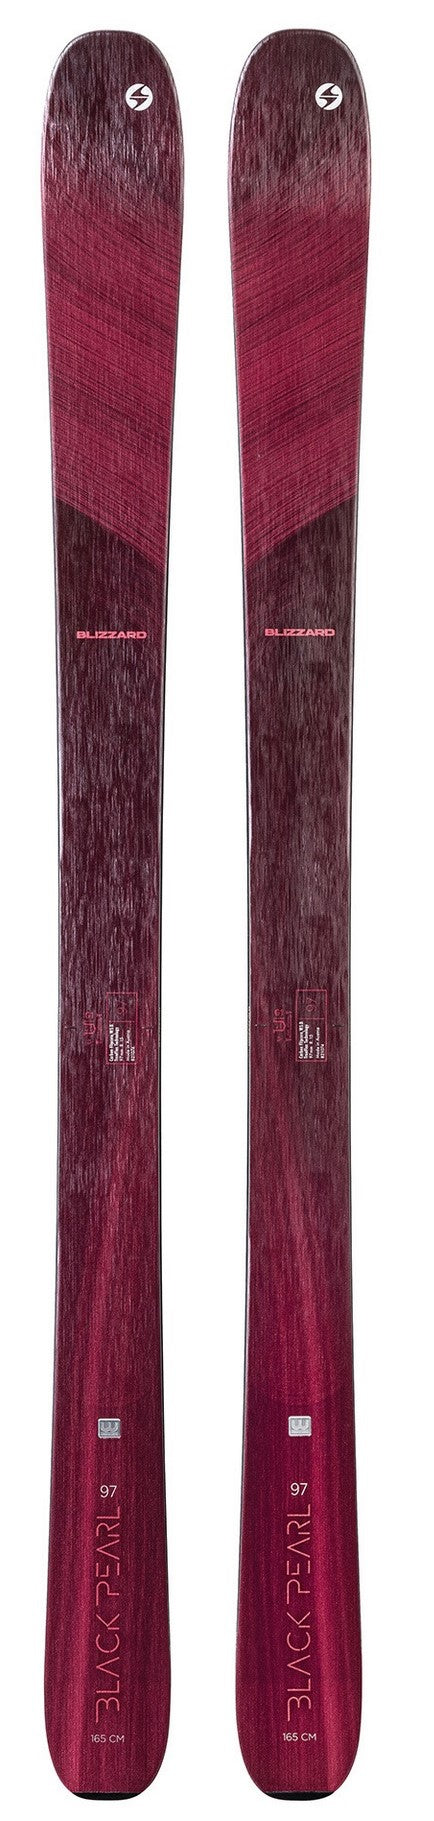 2022 Blizzard Black Pearl 97 ladies snow skis - ProSkiGuy your Hometown Ski Shop on the web